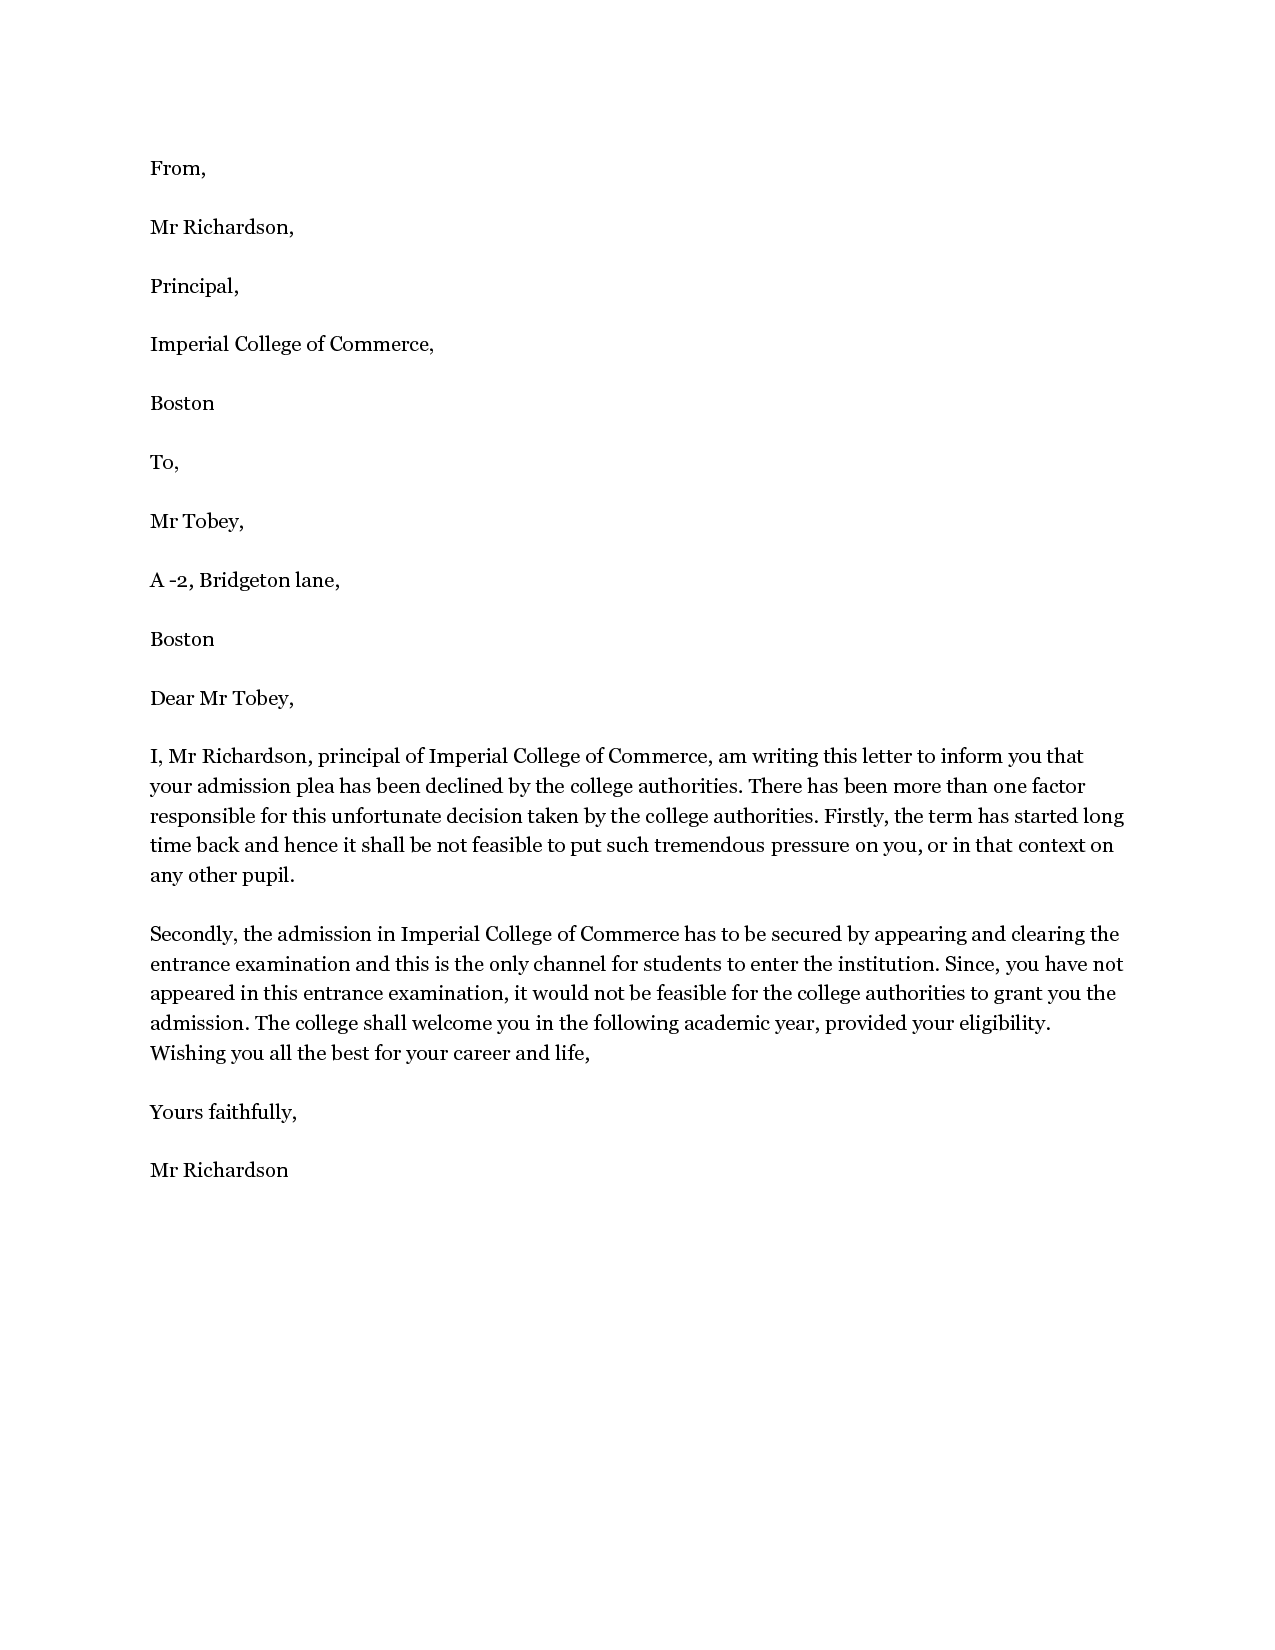 admission appeal letter a college admissions decisions appeal college decline letter the letter should be brief positive and to the point here is a sample letter for declining college admission